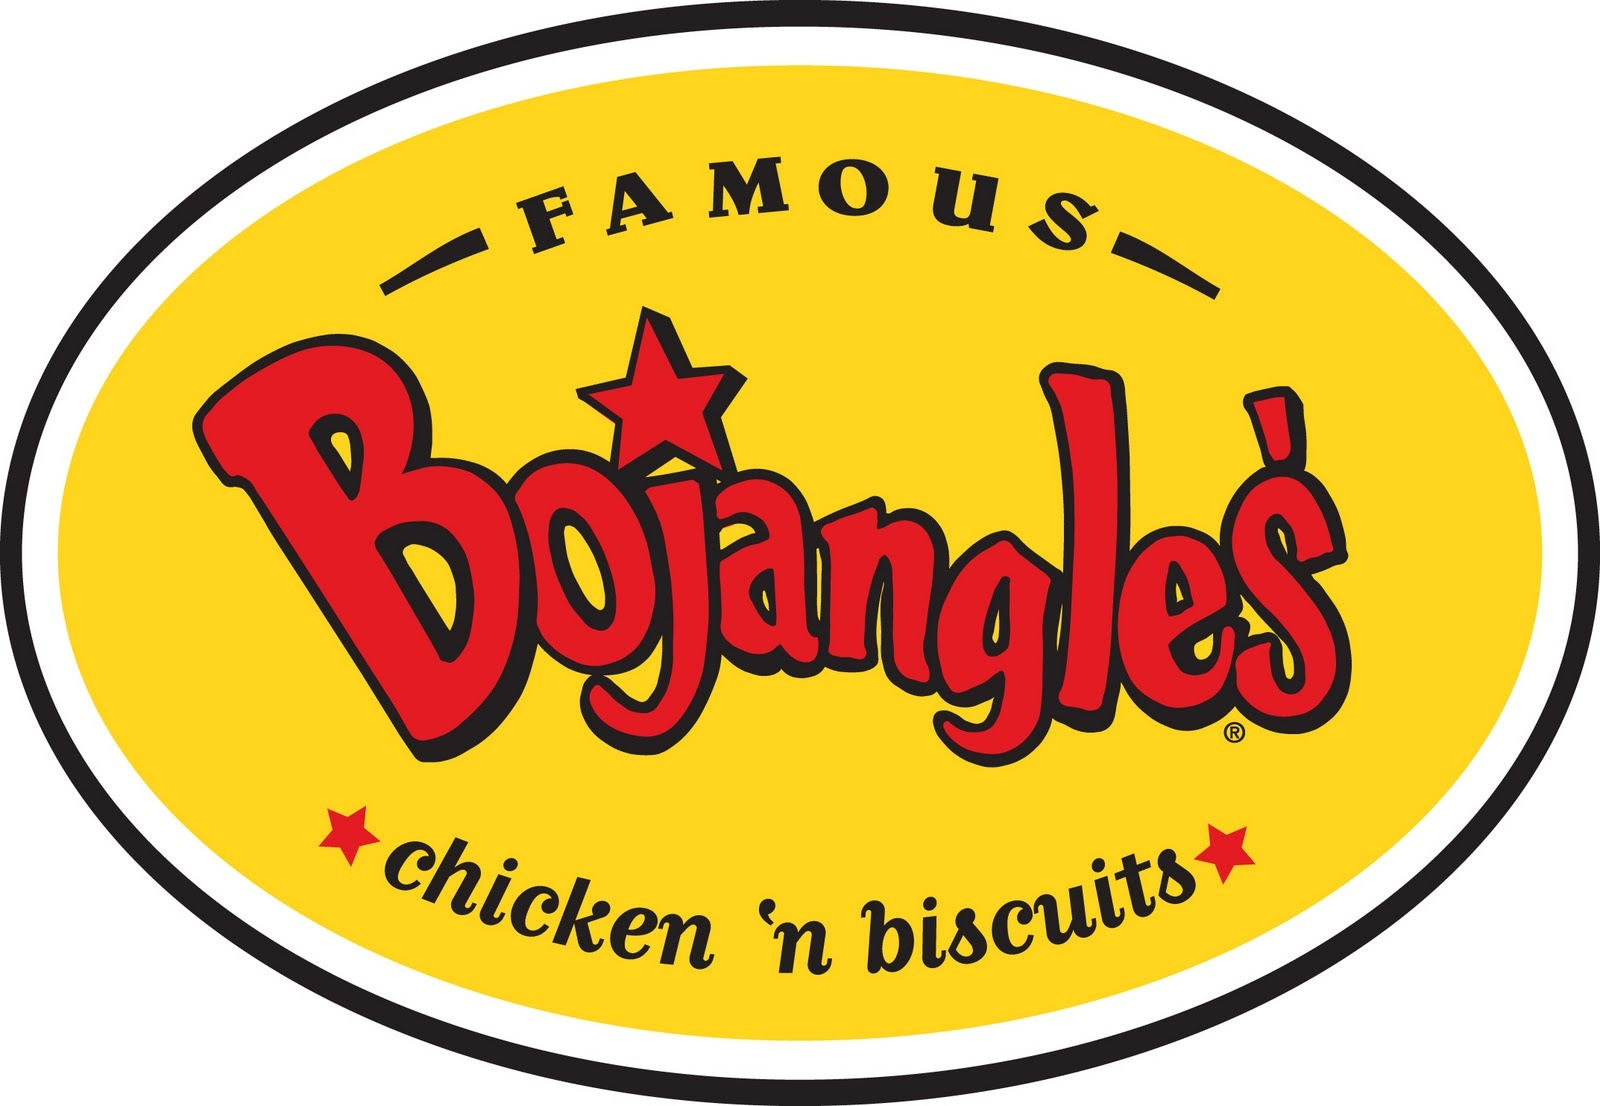 Sasaki Time: Bojangles: Free Sausage, Steak, Country Ham, Or Cajun - Free Printable Coupons For Bojangles